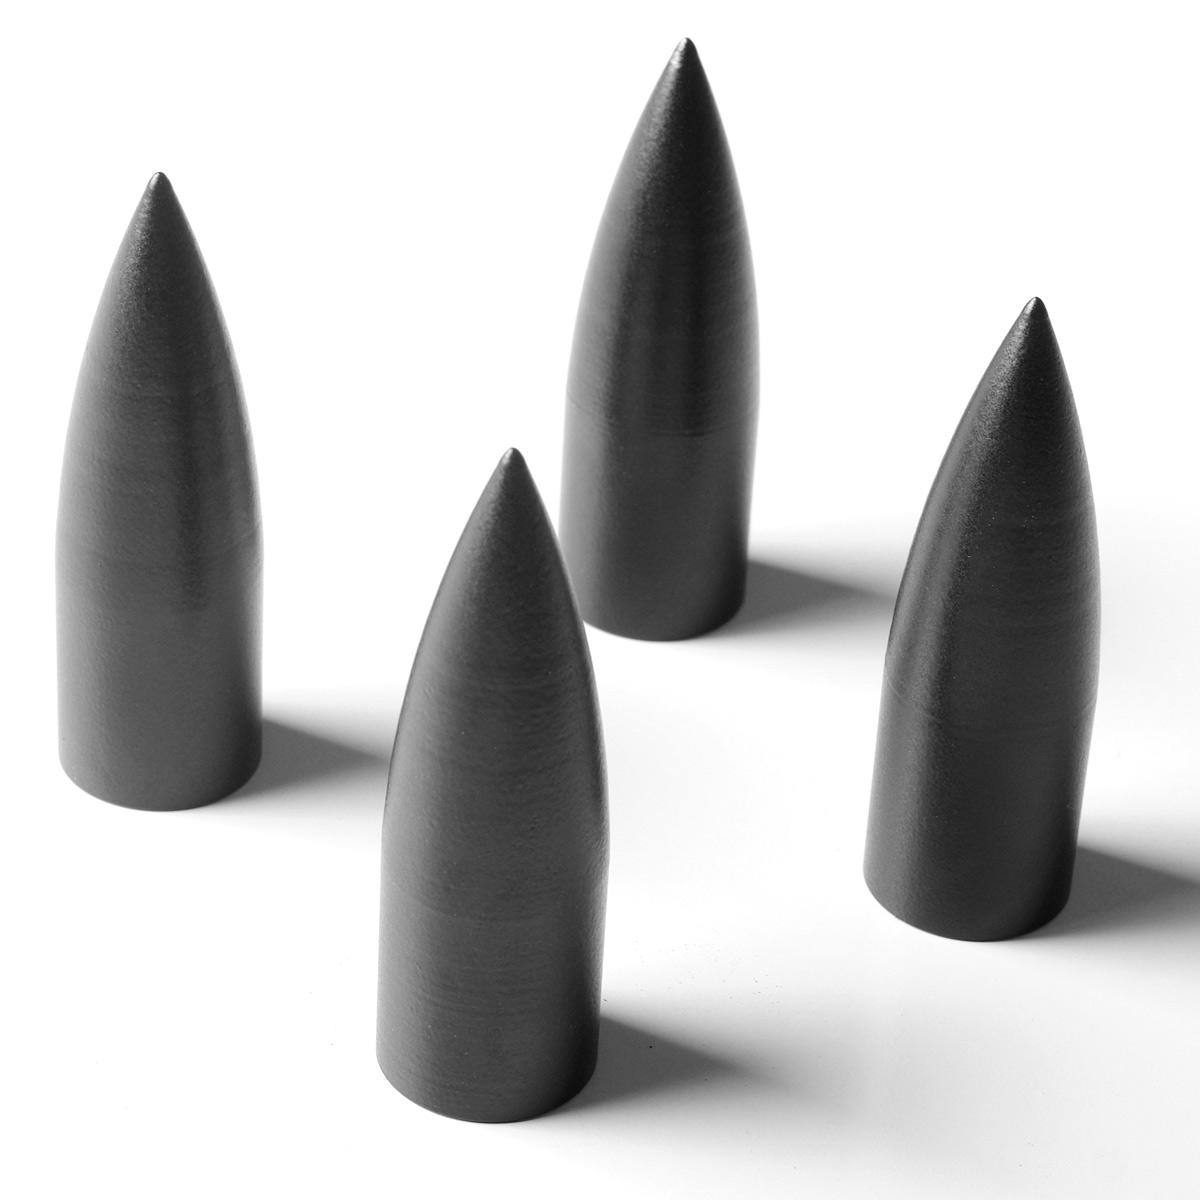 archetype furniture. salamander archetype furniture spikes set of 4 black